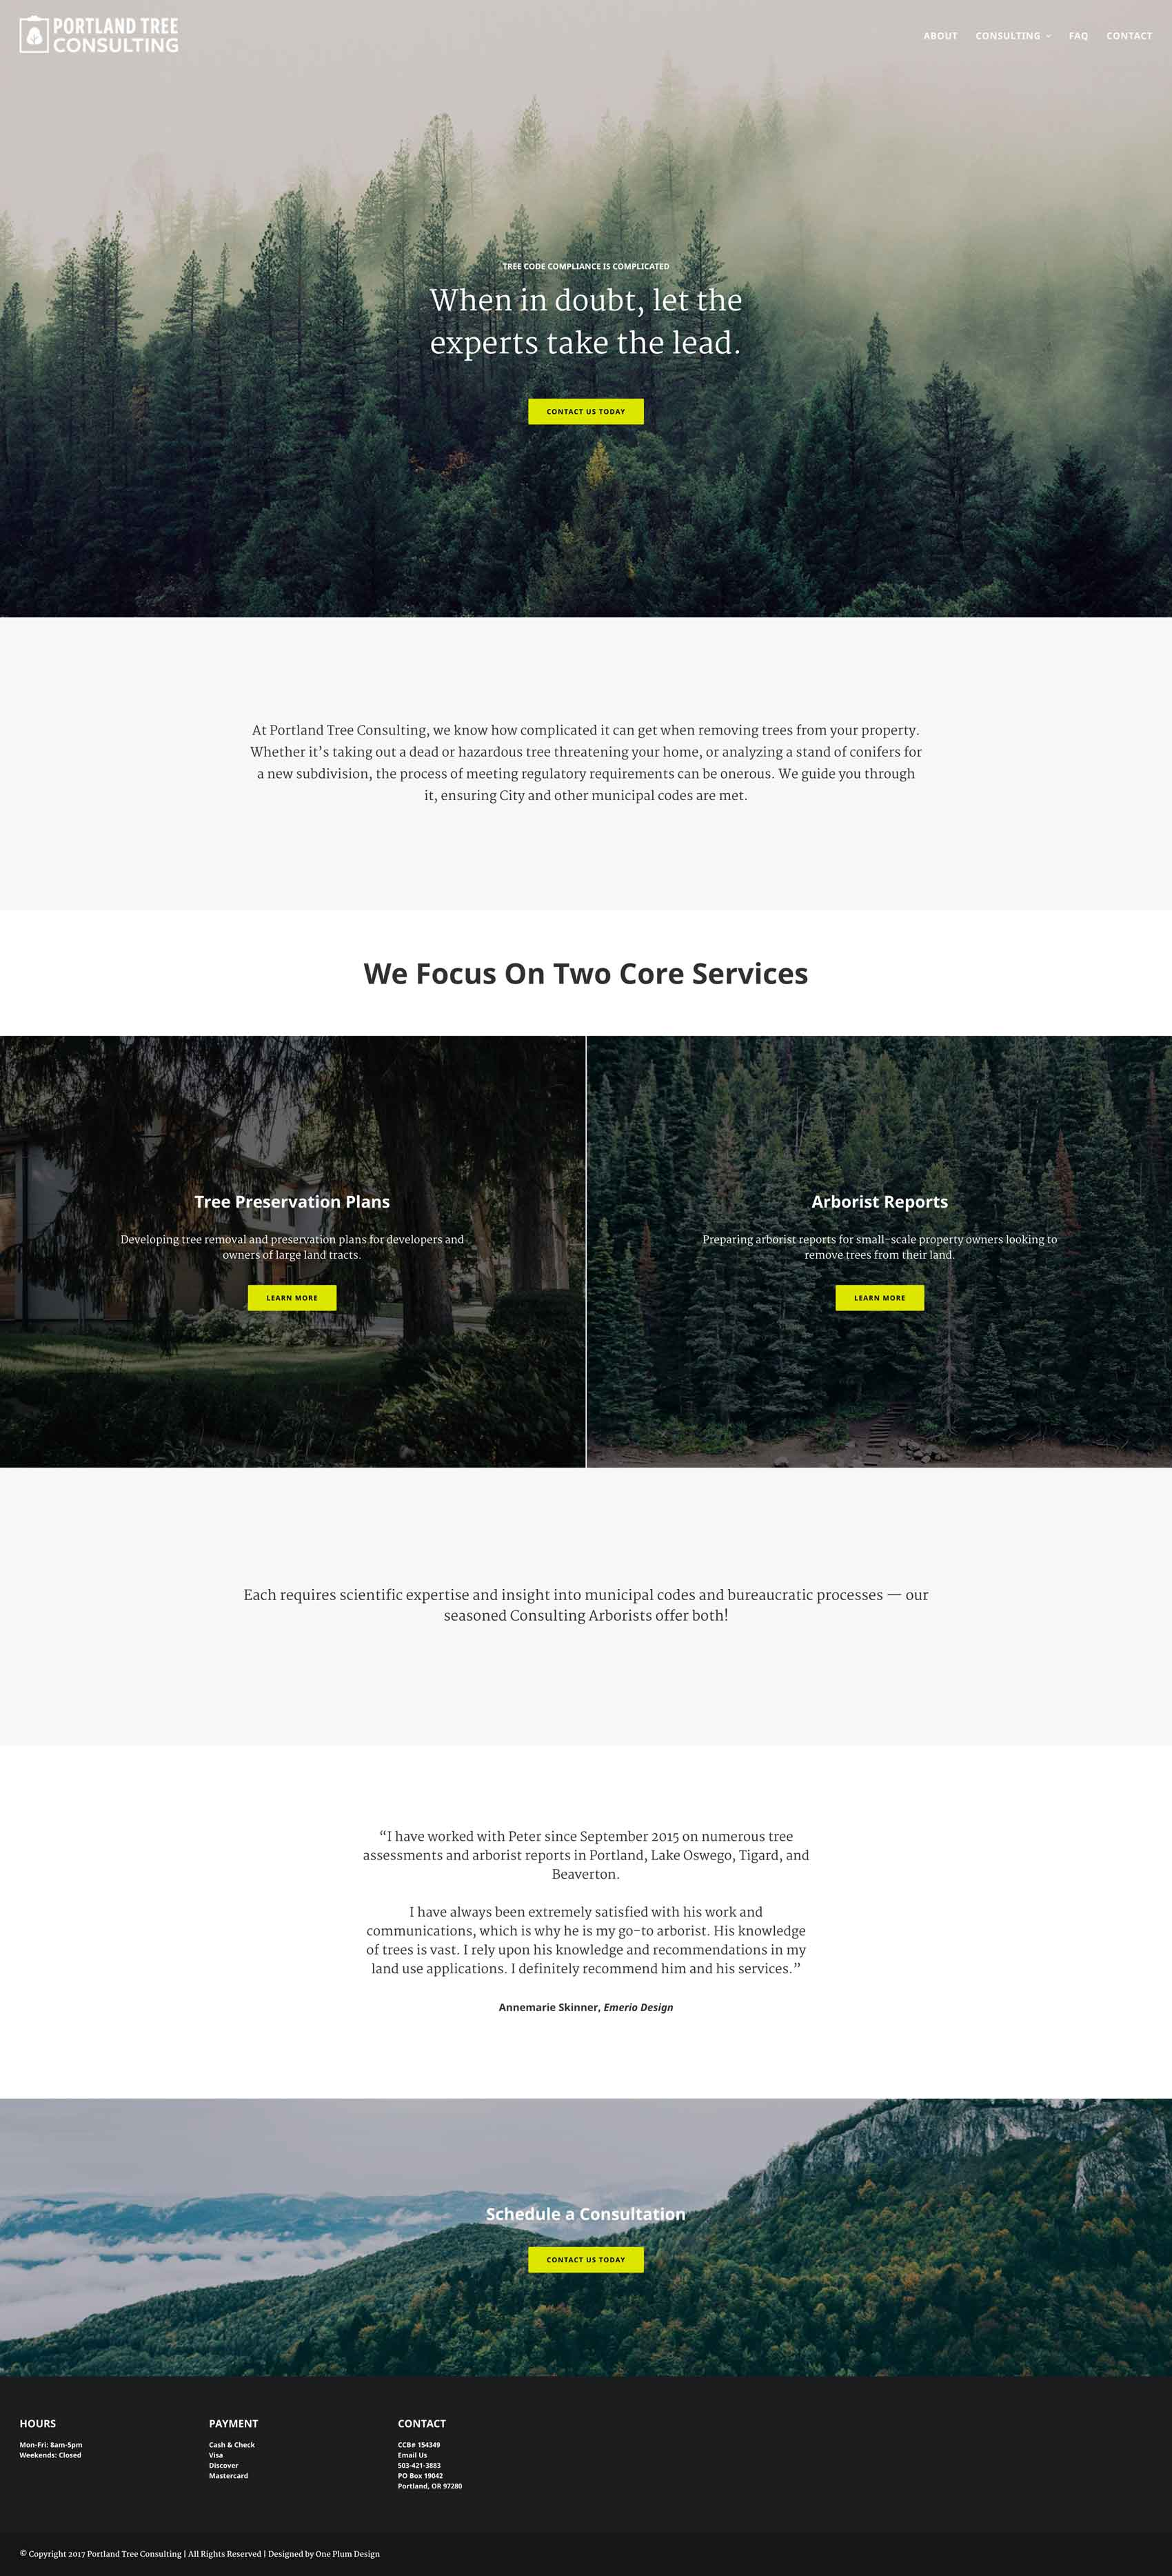 FireShot-Capture-089—Portland-Tree-Consulting–Expert-arborists-_—https___pdxtreeconsulting.com_